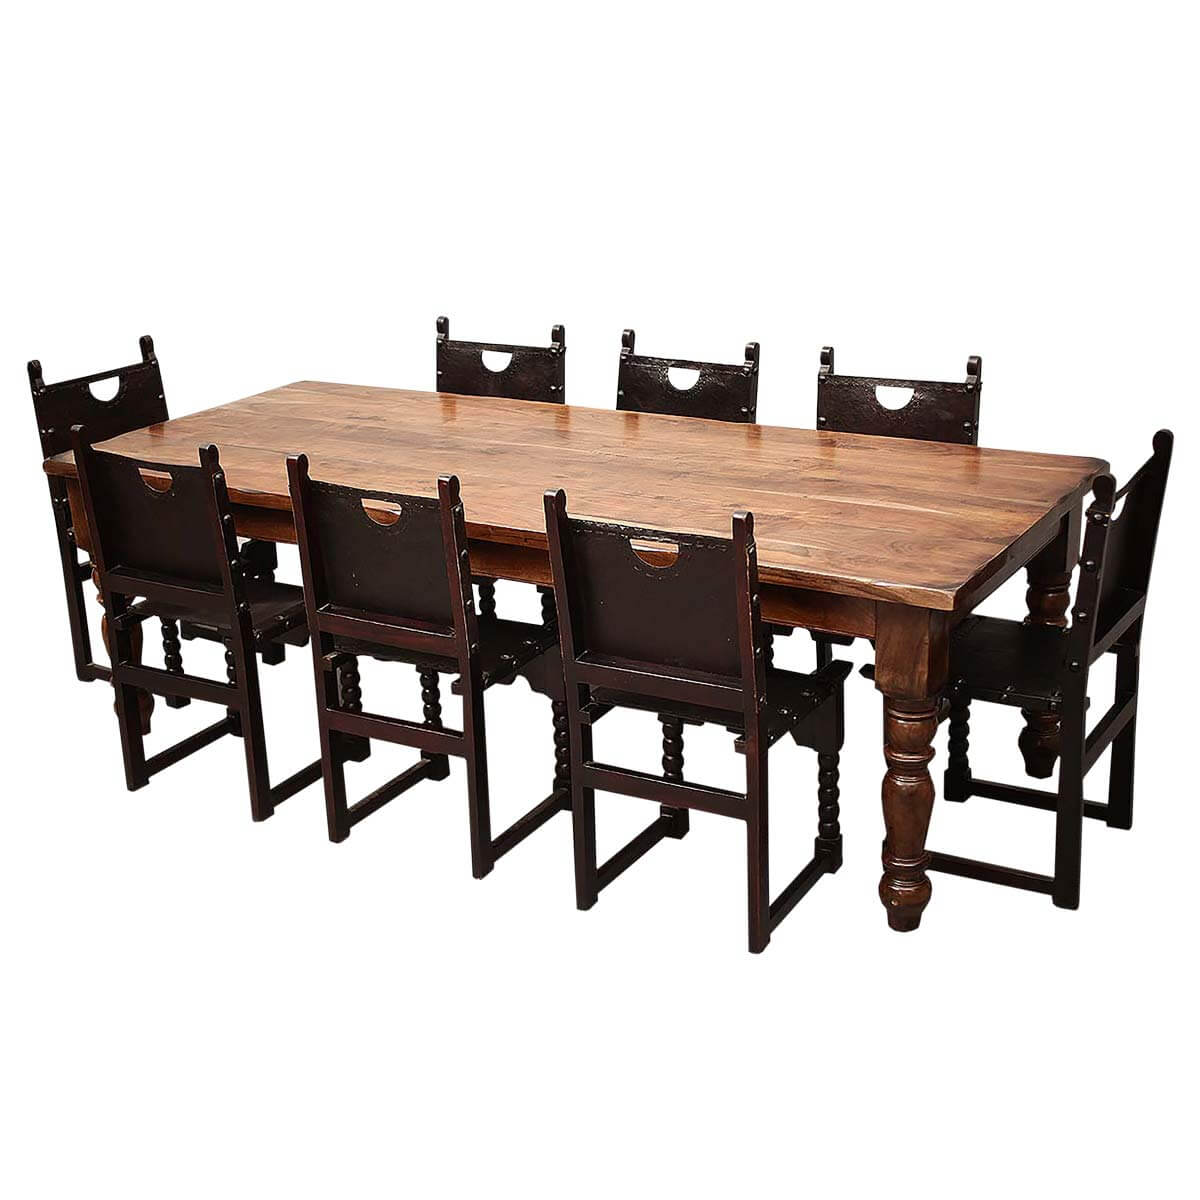 Leather Dining Table: Classic Rustic Acacia & Leather Dining Table Chair Set